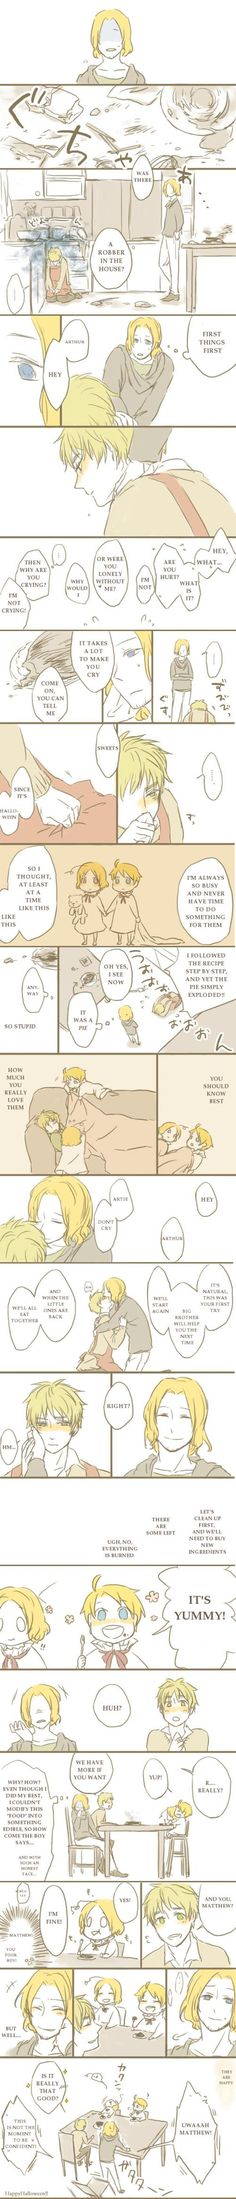 FACE Family fancomic featuring a rather...interesting dinner. - Art by あまの on Pixiv, translated by Hitsu